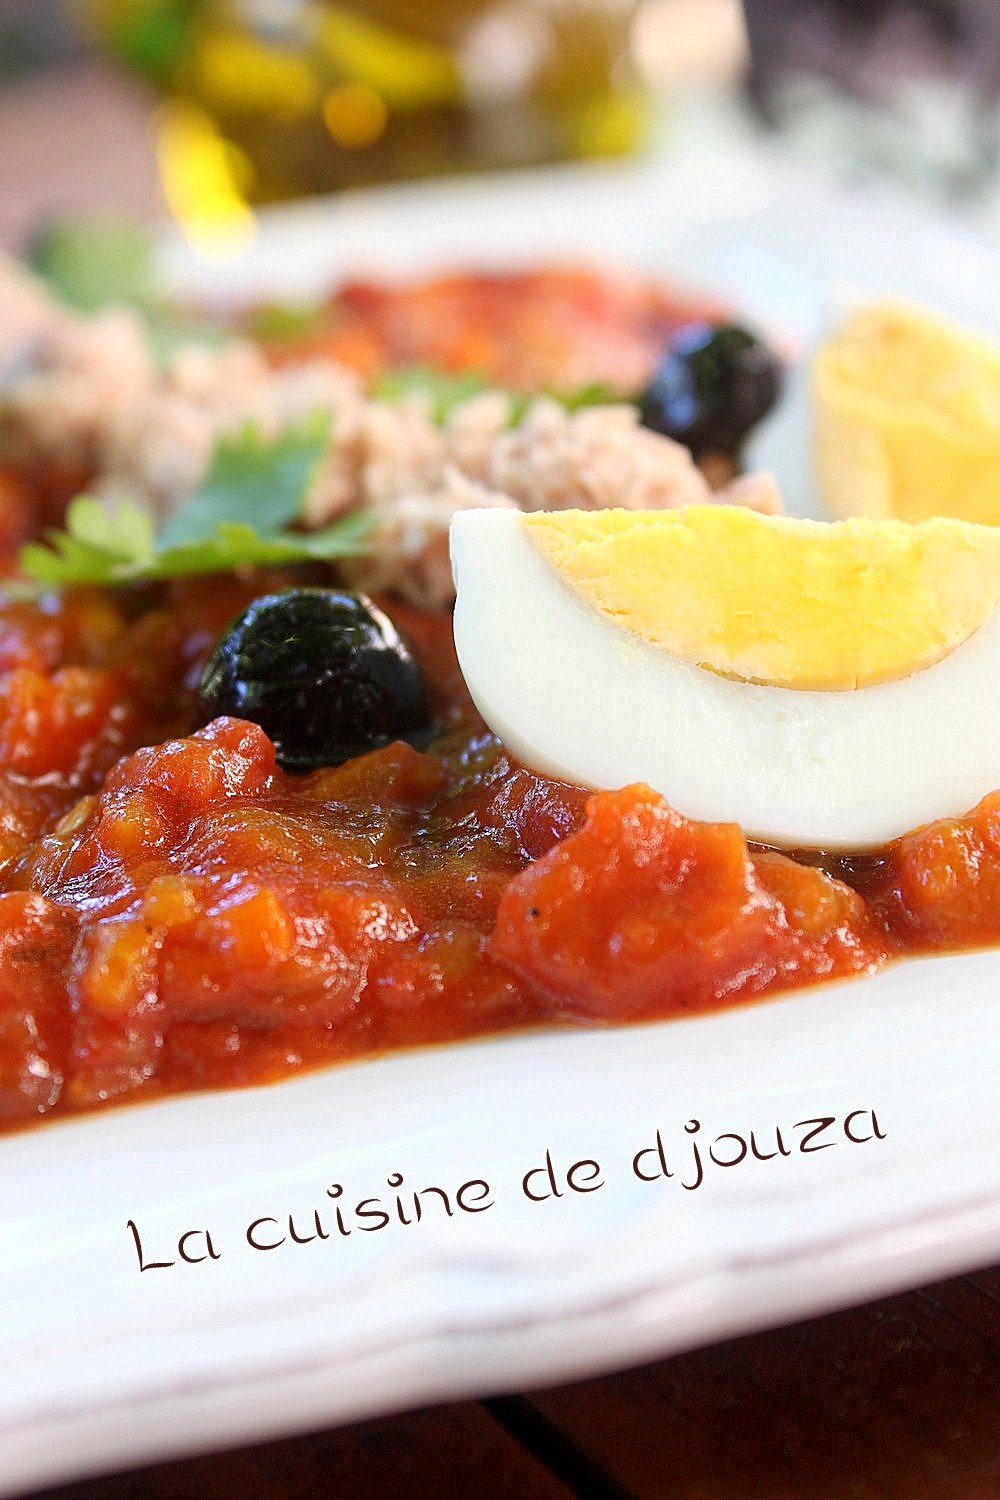 Salade cuite tunisienne slata mechouia recettes for Entree barbecue facile